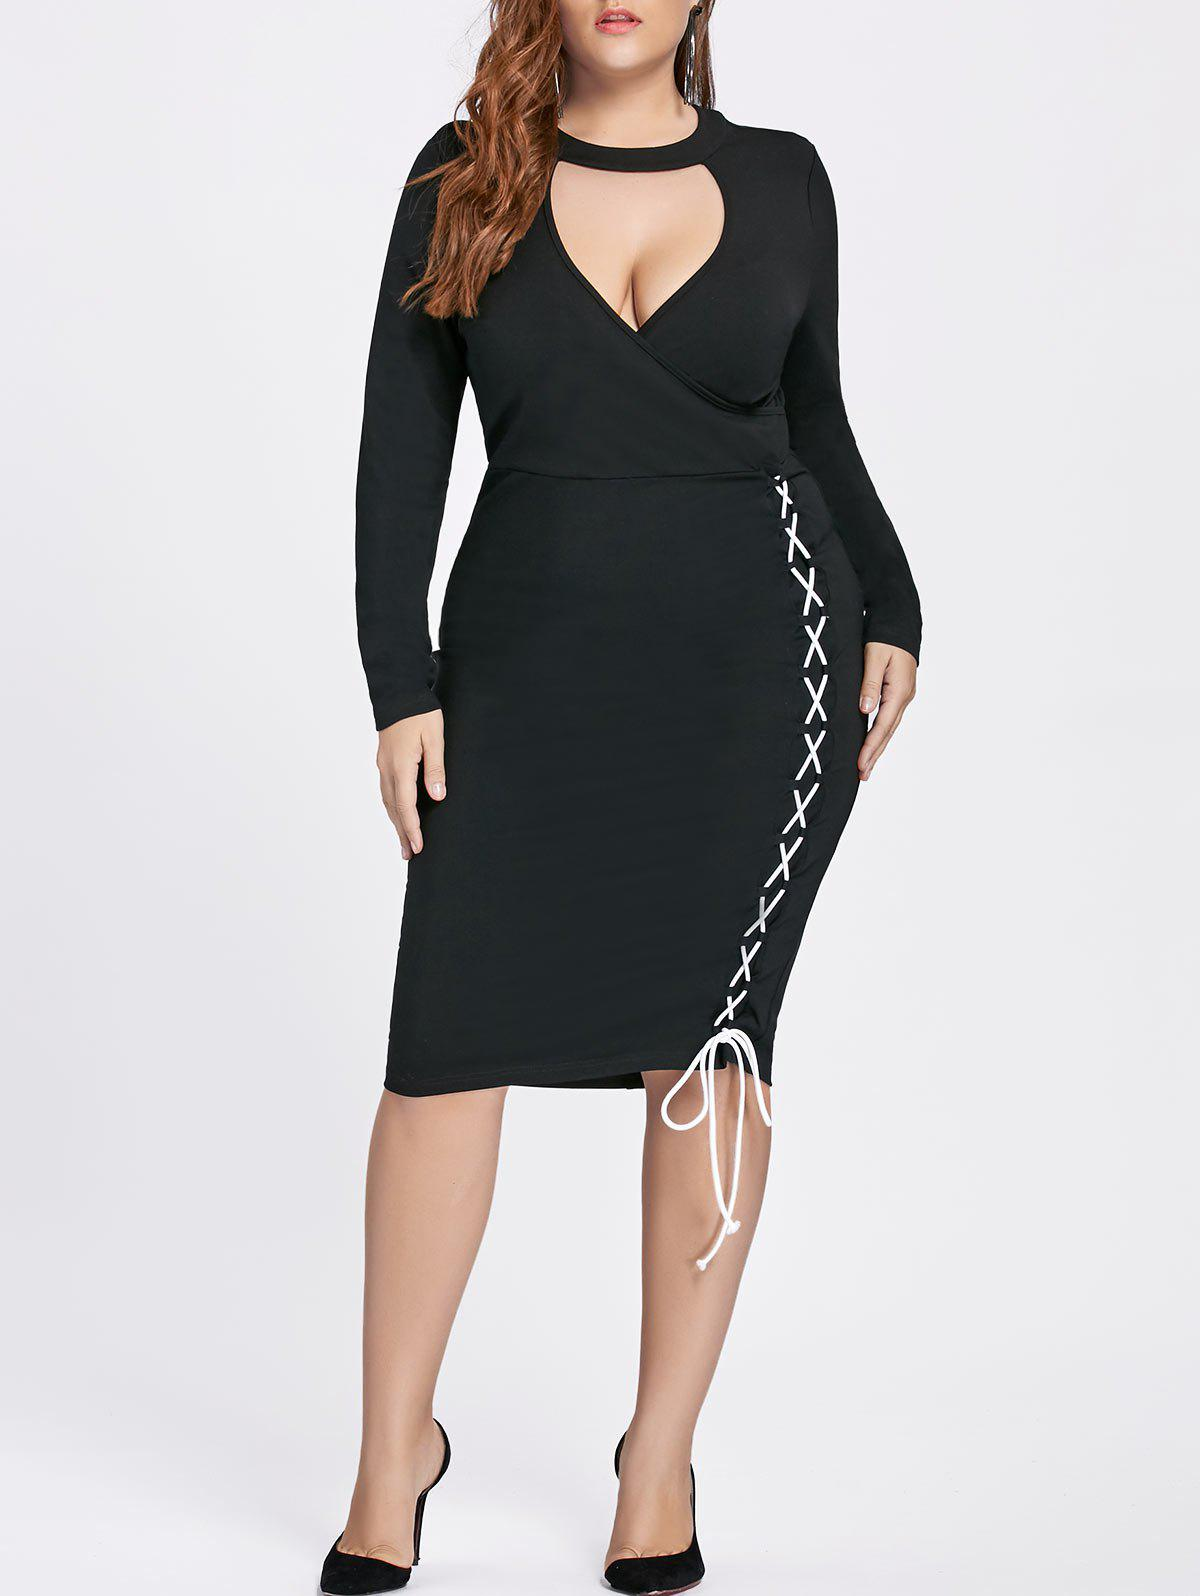 Lace-up Bodycon Plus Size Fitted Choker DressWOMEN<br><br>Size: 4XL; Color: BLACK; Style: Brief; Material: Polyester,Spandex; Silhouette: Bodycon; Dresses Length: Knee-Length; Neckline: Mock Neck; Sleeve Length: Long Sleeves; Pattern Type: Solid; With Belt: No; Season: Fall,Spring; Weight: 0.6010kg; Package Contents: 1 x Dress;